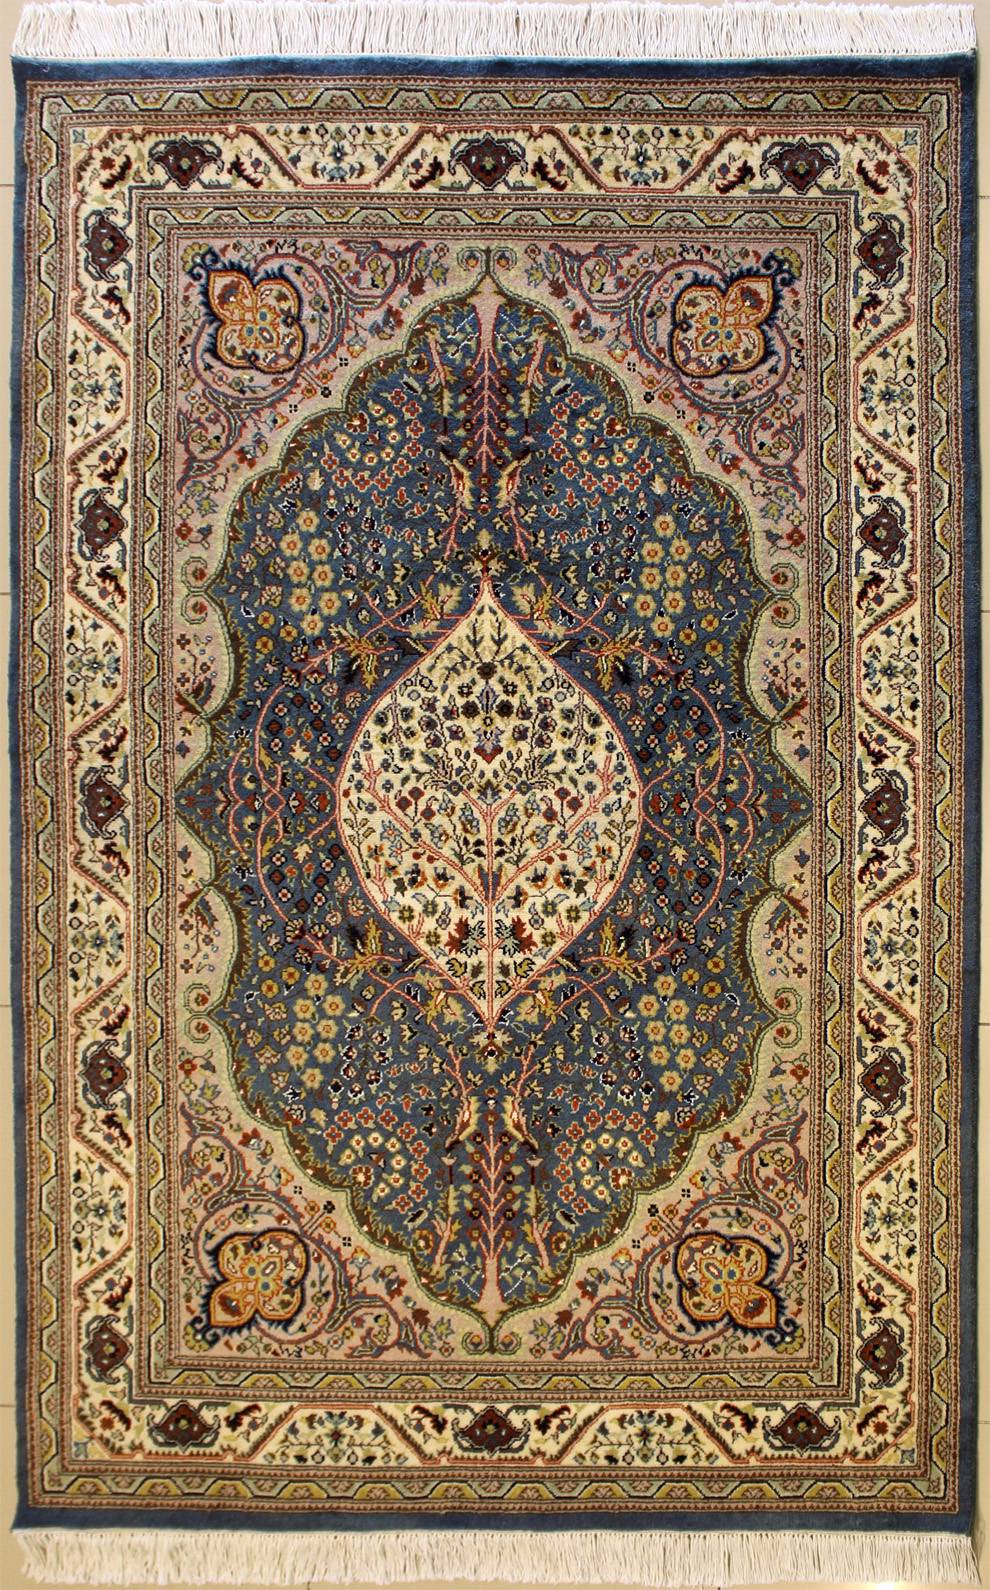 4 7x7 3 Rug Floral Handmade Pak Persian High Quality Rugs A 5x7 Rug Size Rugstc